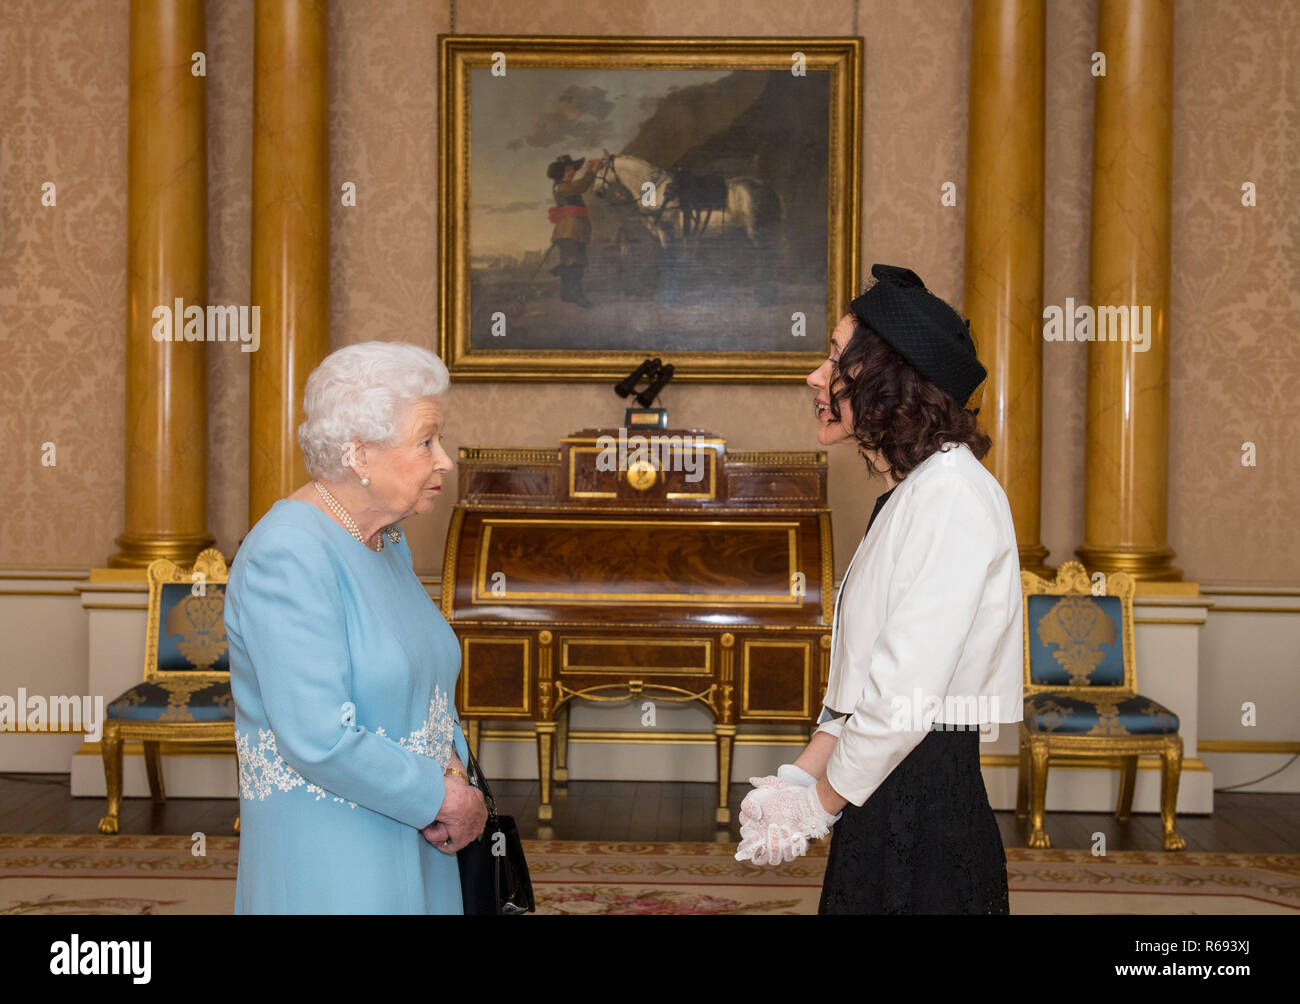 The Ambassador of San Marino Silvia Marchetti presents credentials to Queen Elizabeth II during a private audience at Buckingham Palace, London. - Stock Image